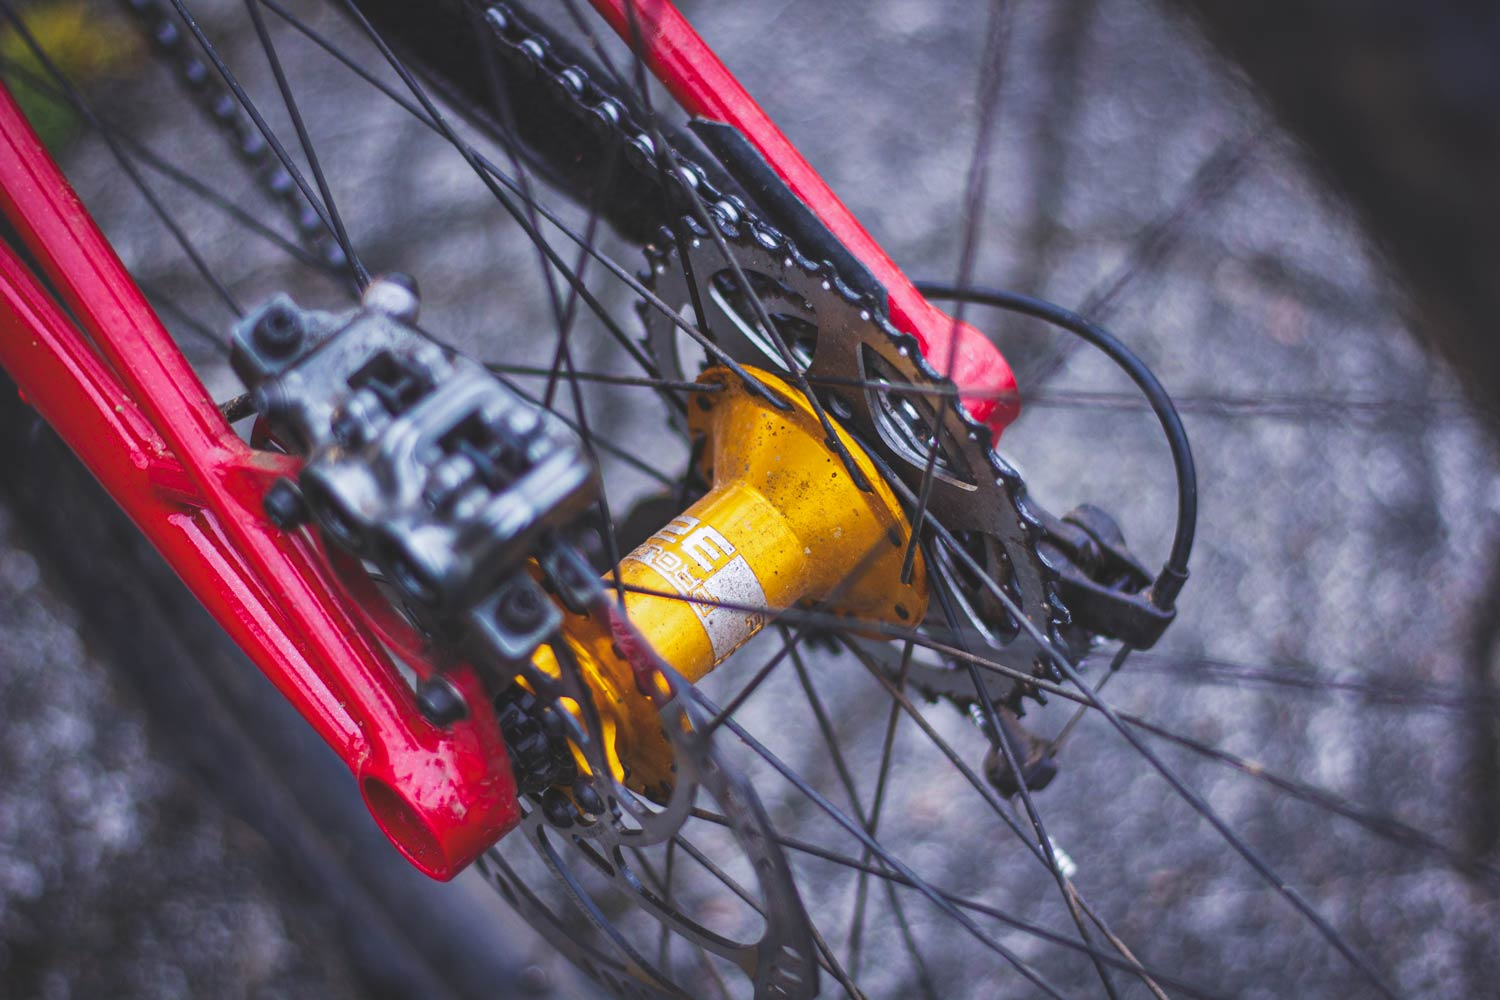 Starling Cycles Staer - High Jack Pivot Prototype